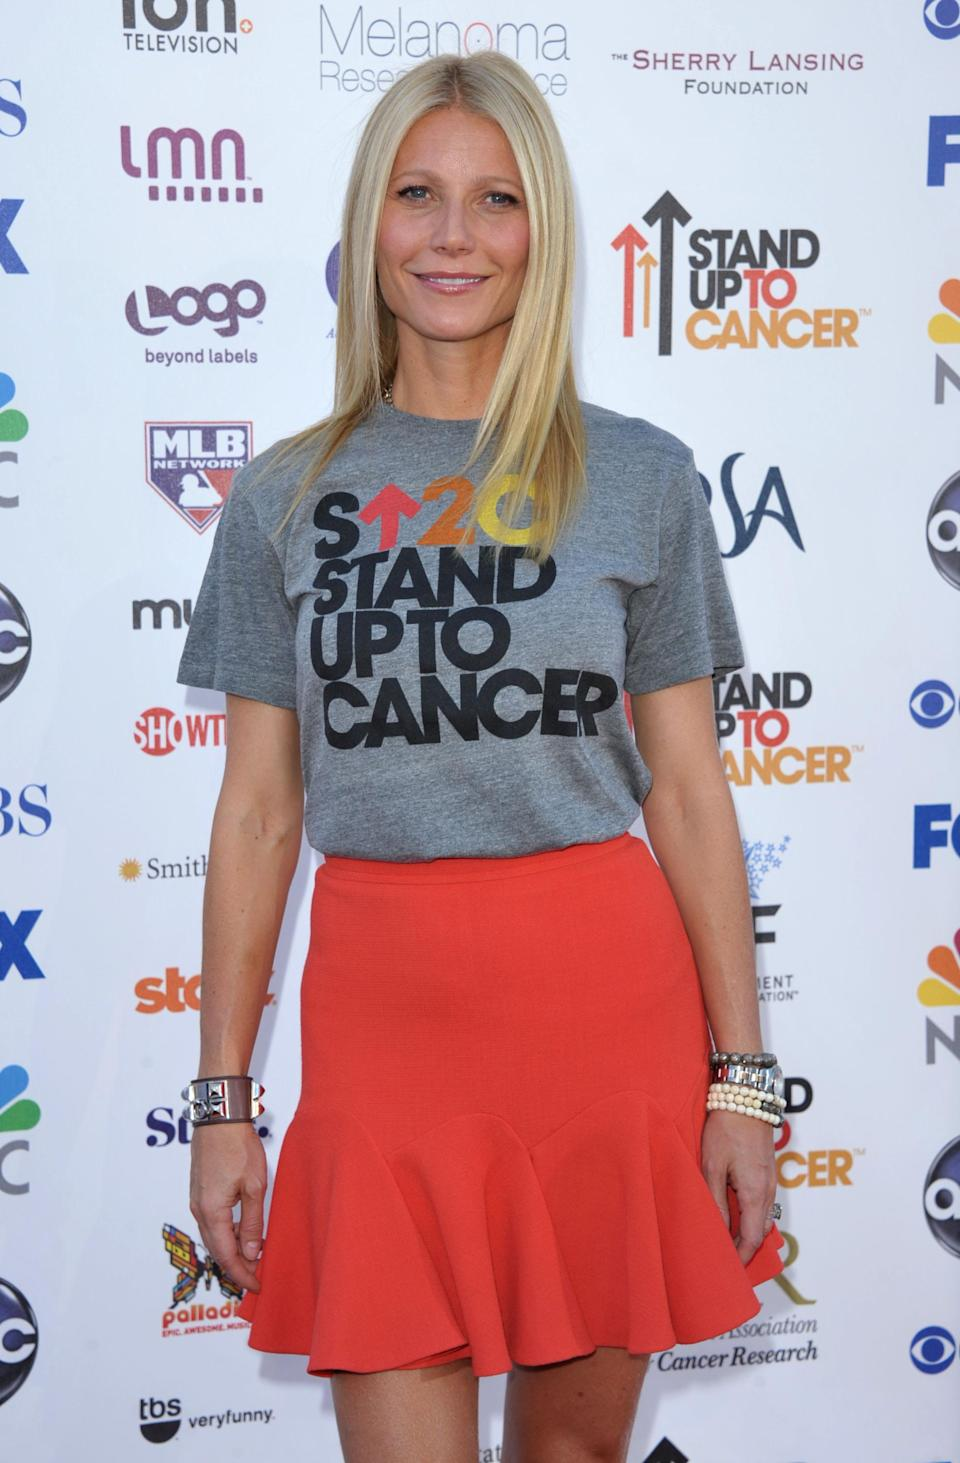 "Actress Gwyneth Paltrow attends ""Stand Up to Cancer"" at the Shrine Auditorium on Friday, Sept. 7, 2012 in Los Angeles. The initiative aimed to raise funds to accelerate innovative cancer research by bringing new therapies to patients quickly. (Photo by John Shearer/Invision/AP)"